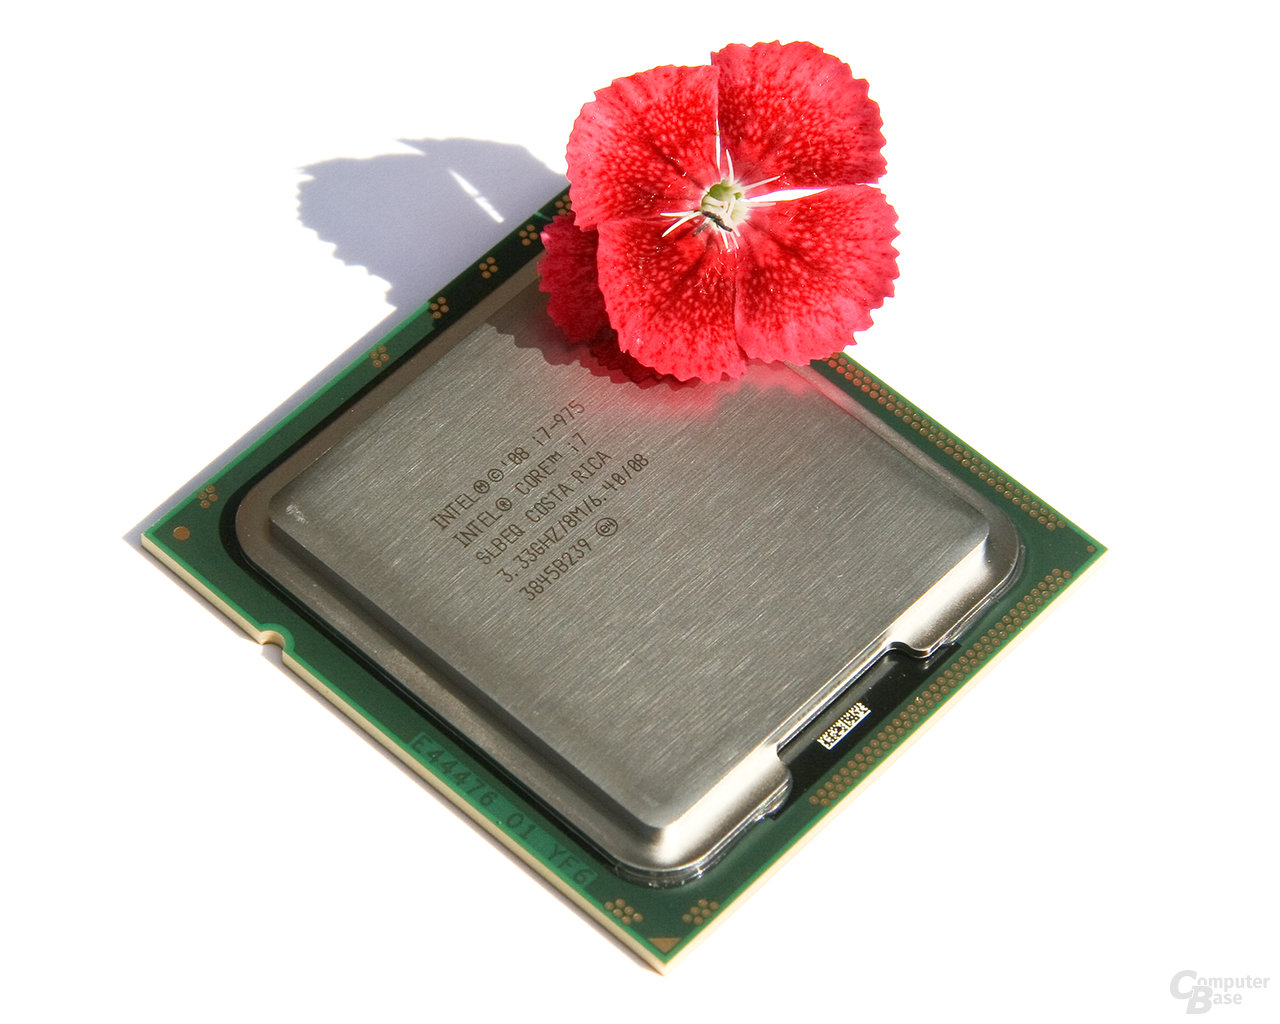 Intel Core i7 975 Extreme Edition